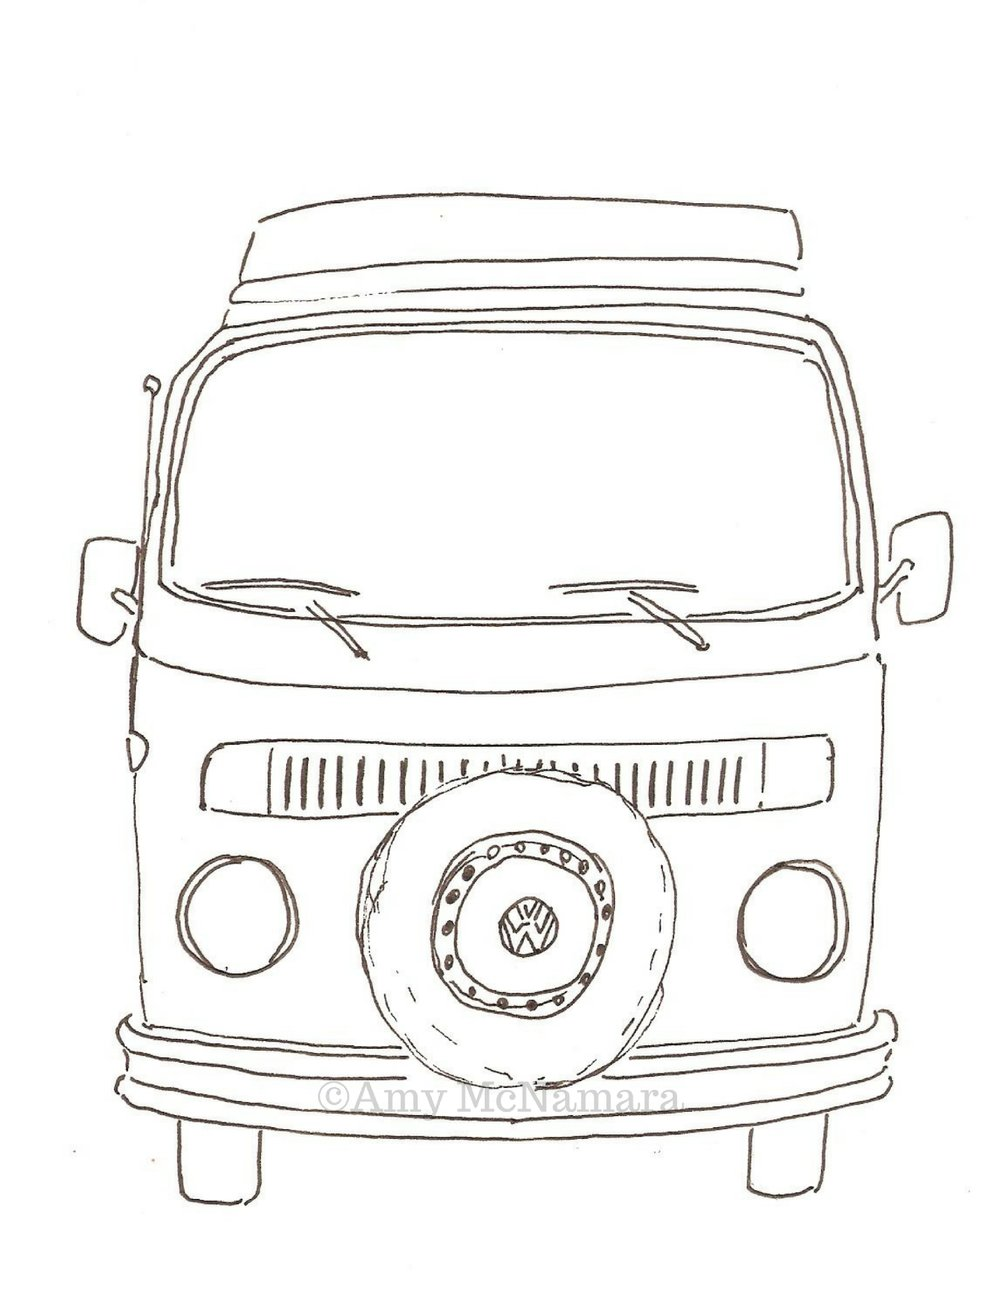 no. 239A VW Bus Black & White